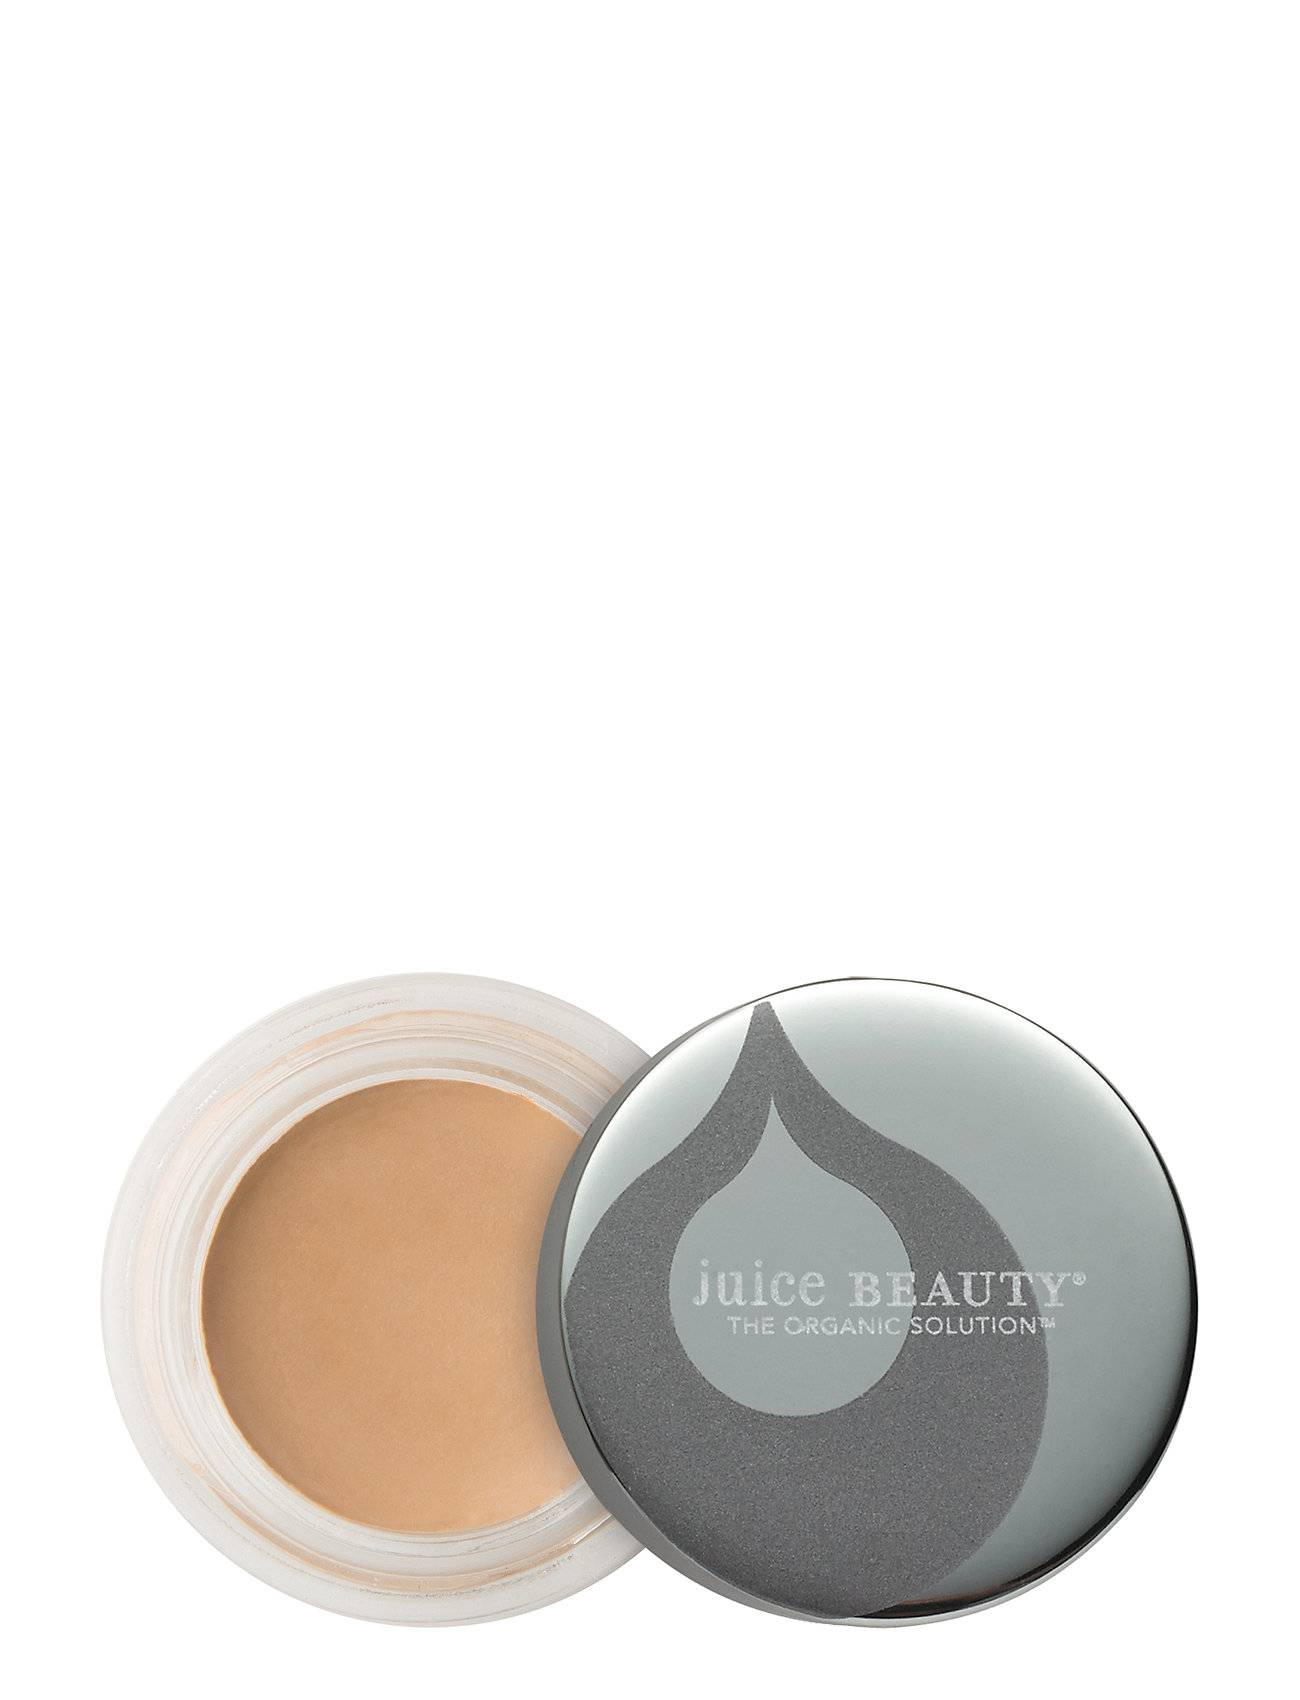 Juice Beauty Perfecting Concealer - 14 Sand